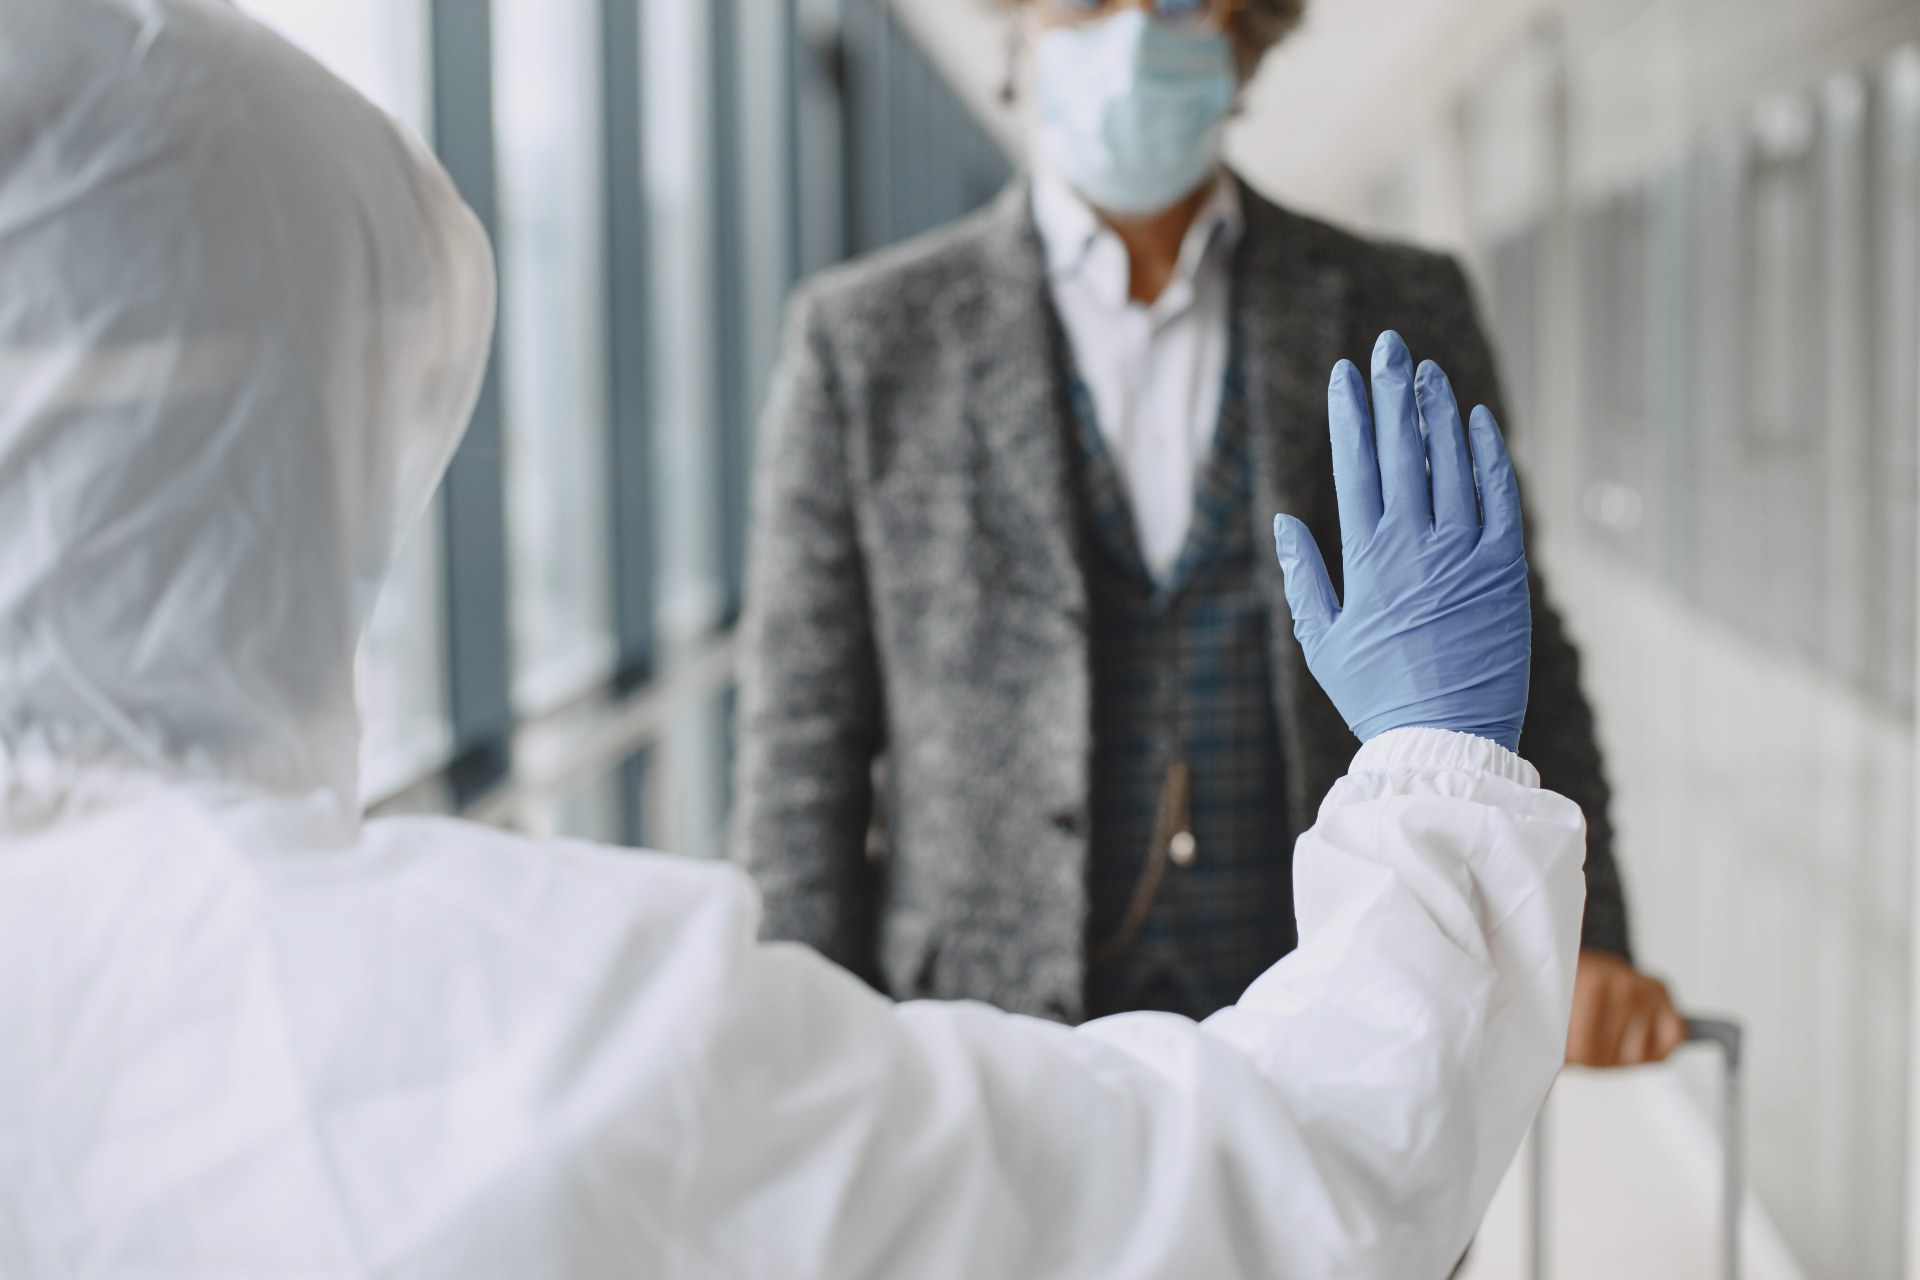 What Are The 5 Standard Precautions For Infection Control?